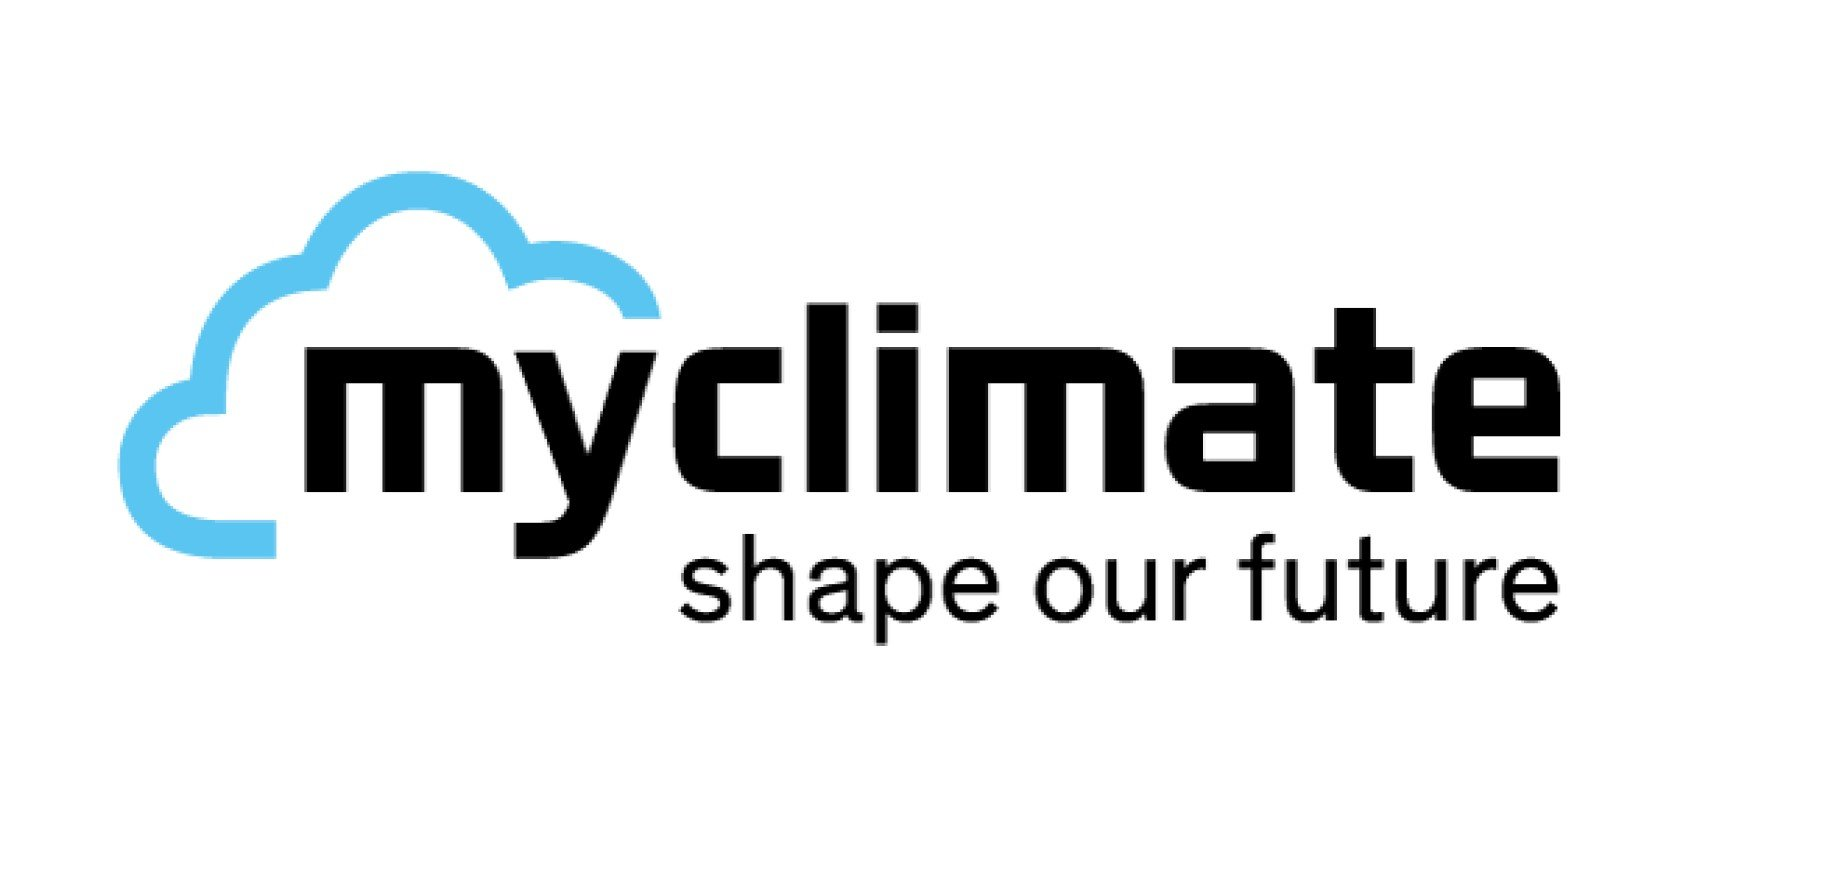 myclimate-logo-customised-centered.jpg